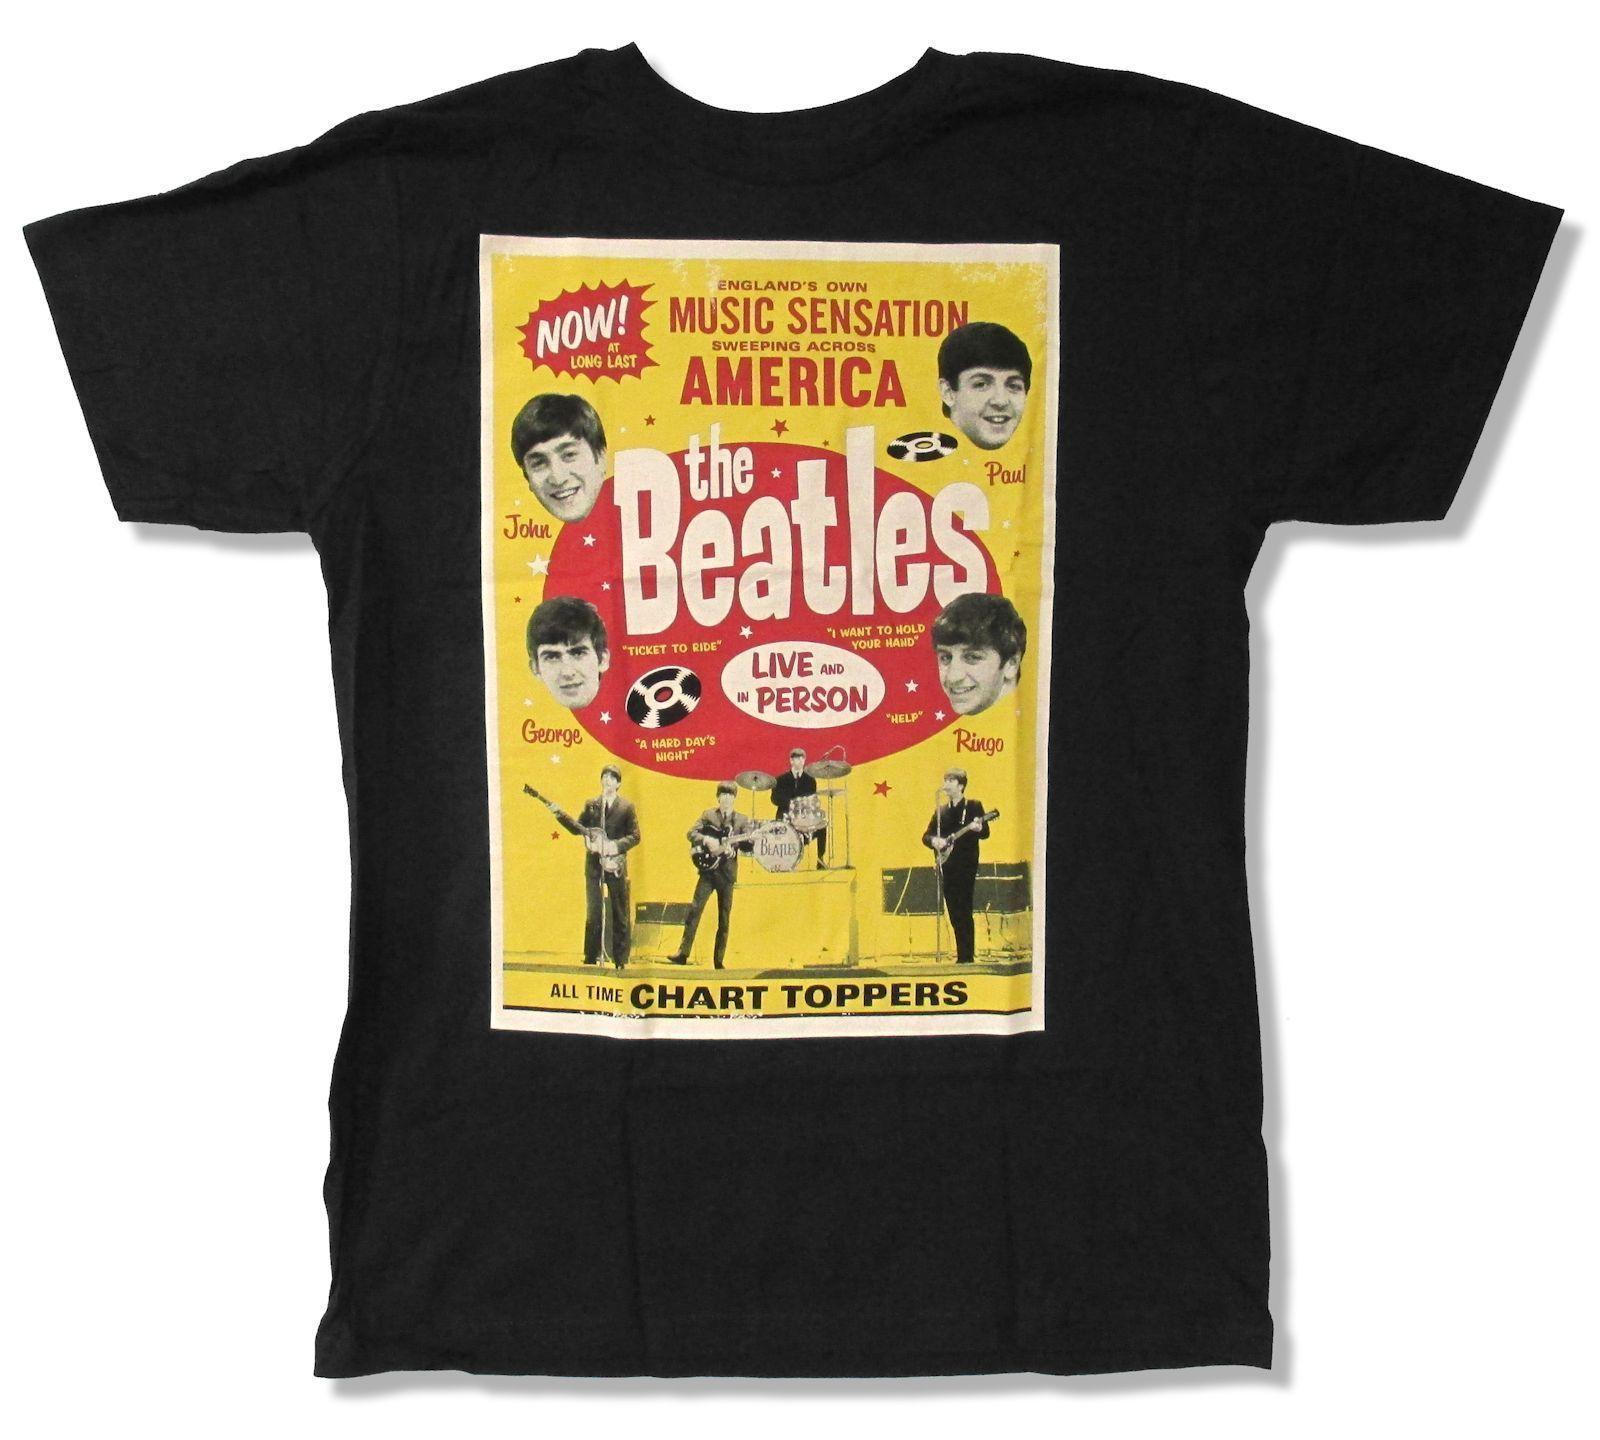 "THE BEATLES ""CHART TOPPERS"" BLACK T-SHIRT NEW OFFICIAL HELP HOLD YOUR HAND"